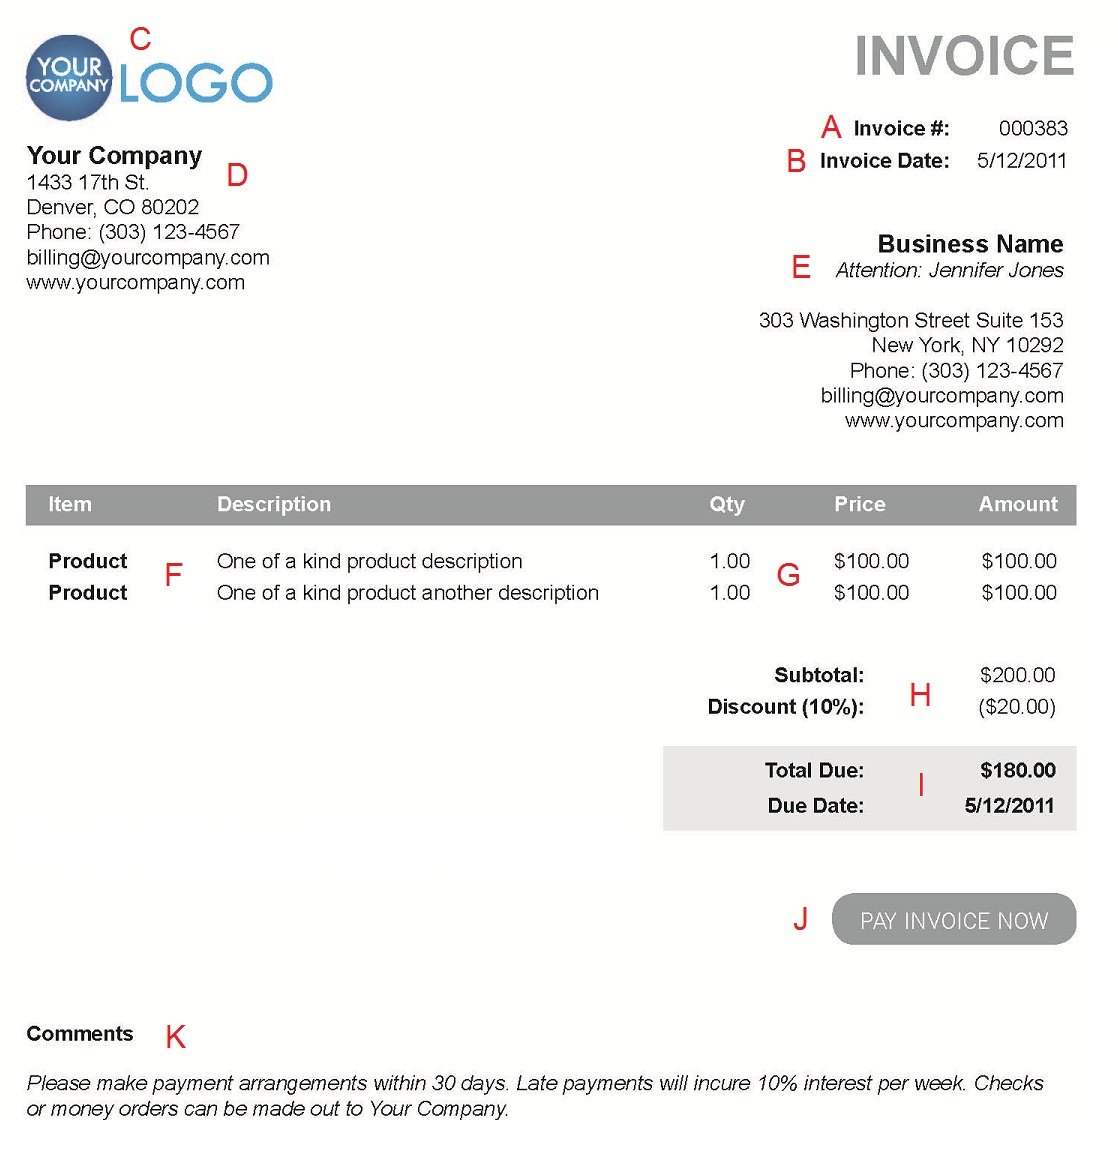 Theologygeekblogus  Stunning The  Different Sections Of An Electronic Payment Invoice With Remarkable A  With Enchanting Receipt Examples Templates Also Meaning Of Global Depository Receipts In Addition Bearville Receipt Code And Vat Receipt Template As Well As Tax Refund Receipt Additionally Scanned Receipt From Paysimplecom With Theologygeekblogus  Remarkable The  Different Sections Of An Electronic Payment Invoice With Enchanting A  And Stunning Receipt Examples Templates Also Meaning Of Global Depository Receipts In Addition Bearville Receipt Code From Paysimplecom